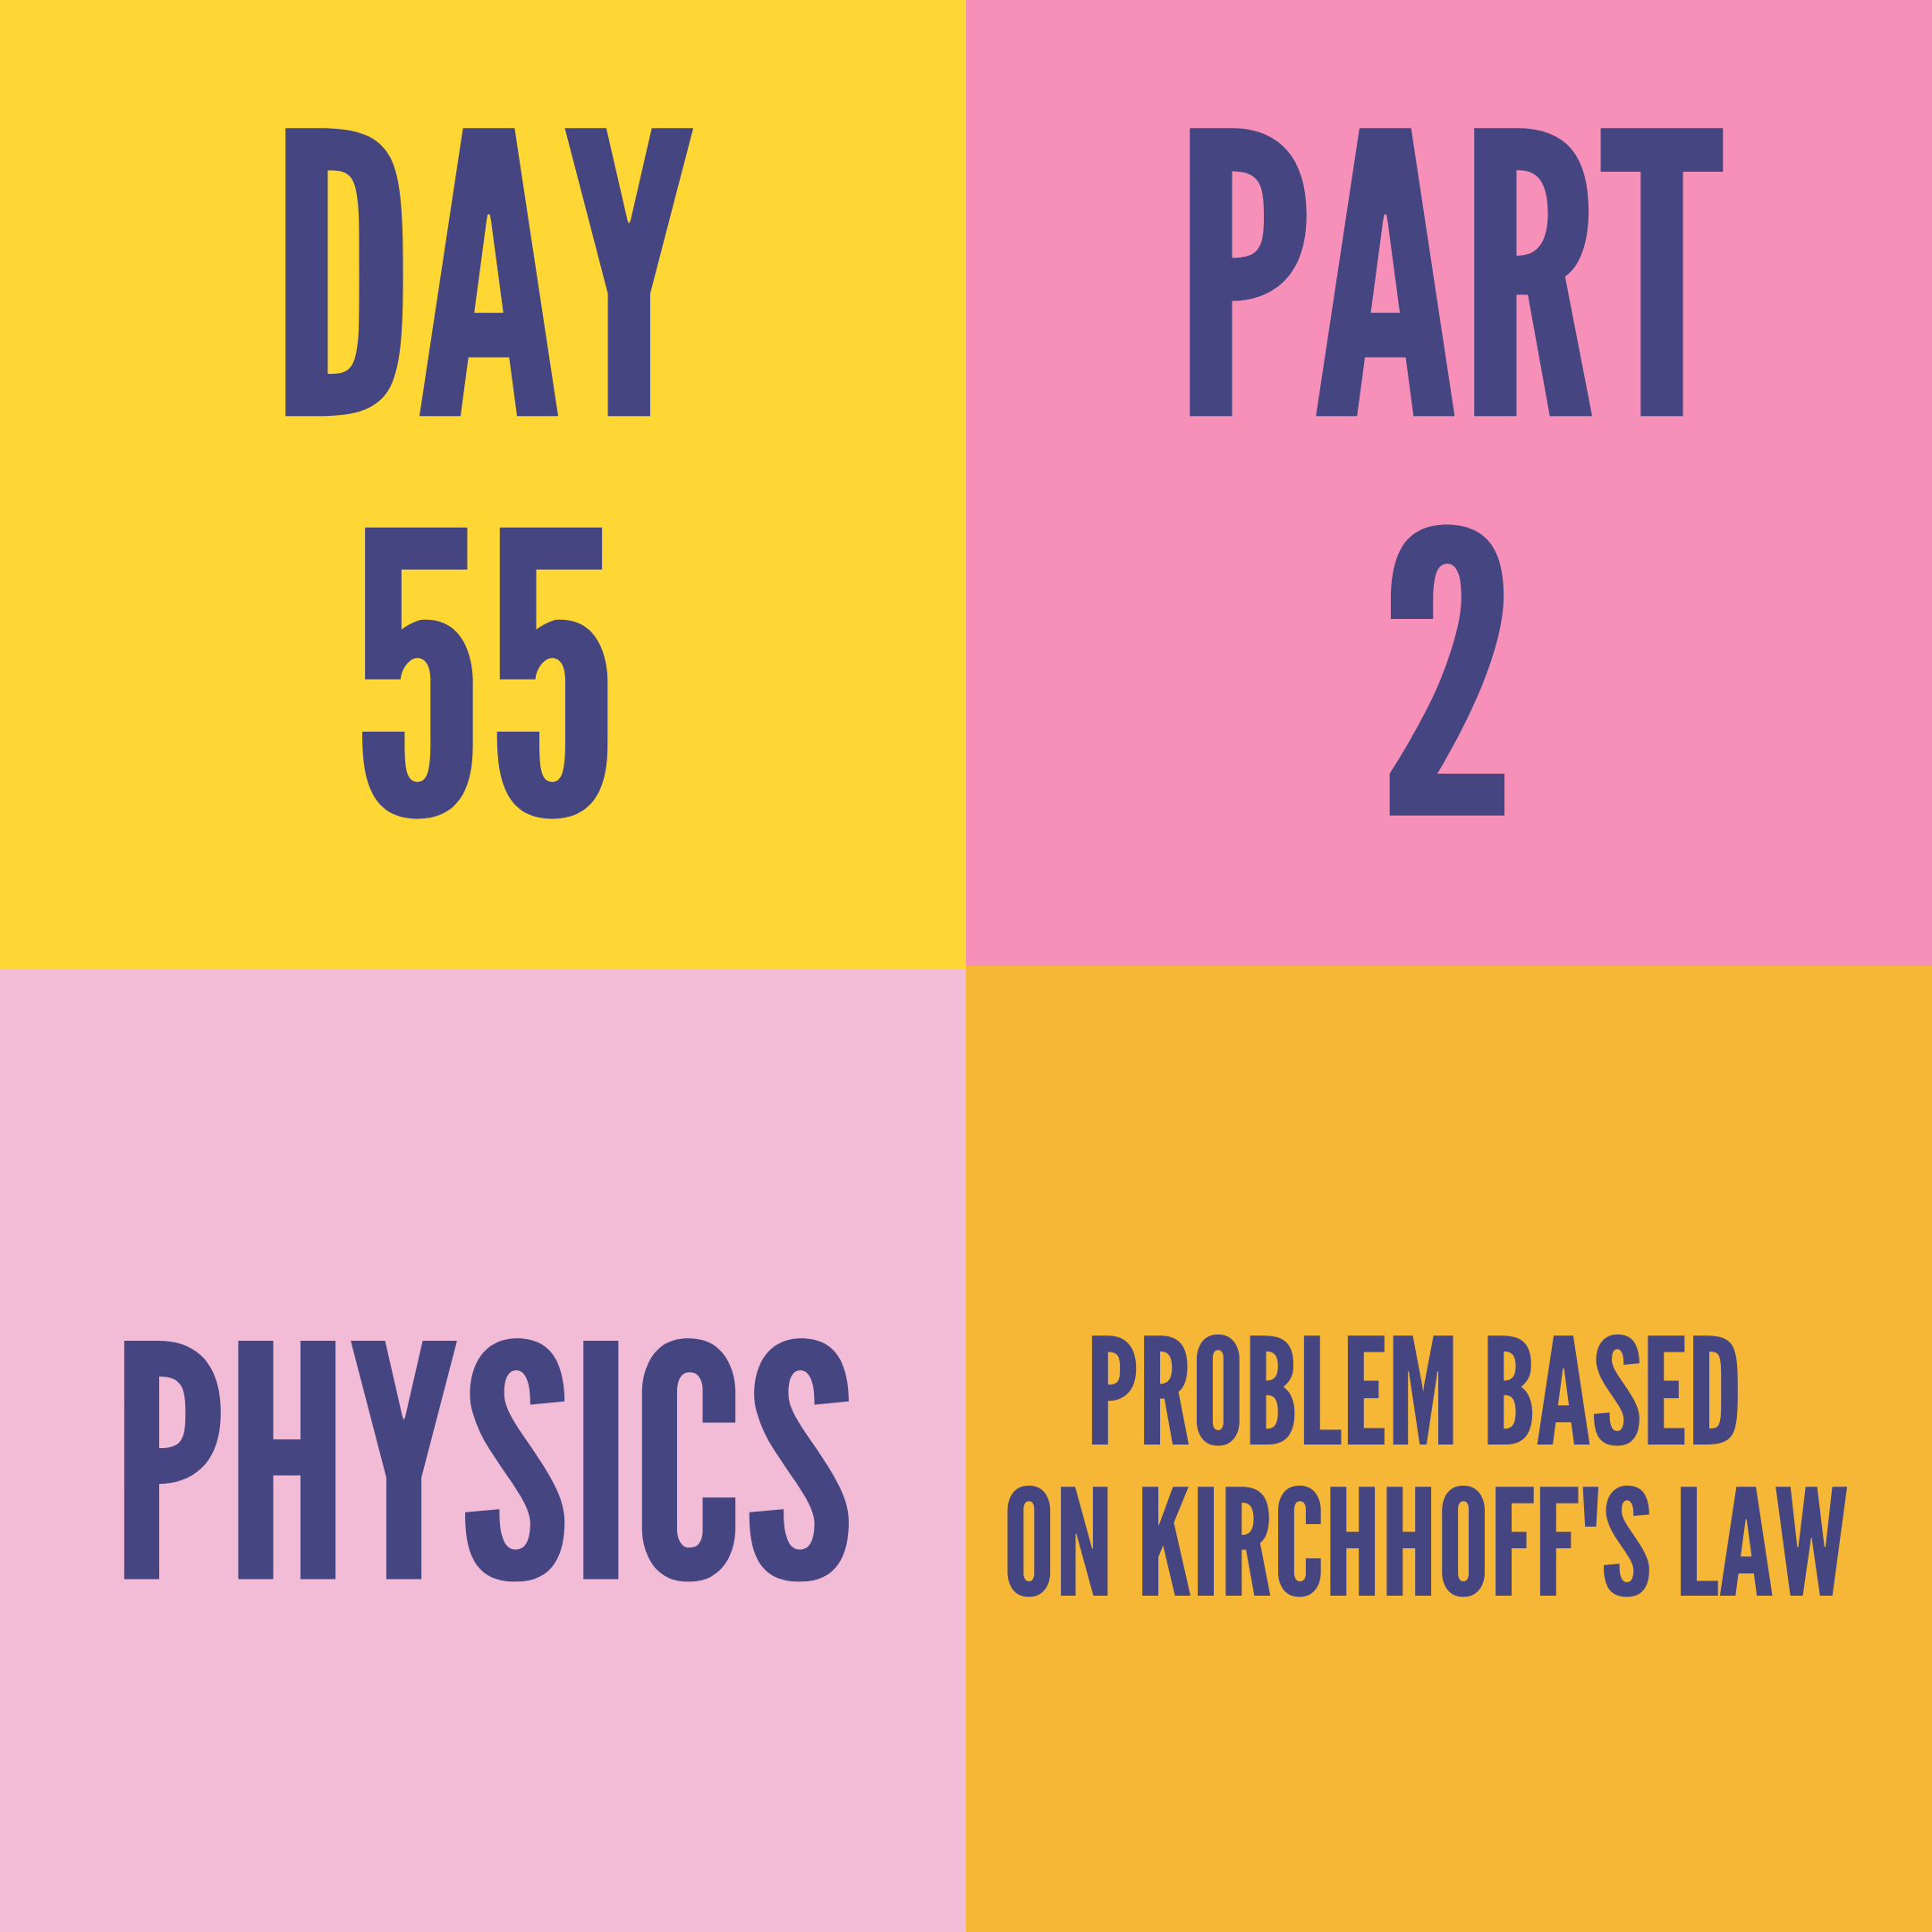 DAY-55 PART-2  PROBLEM BASED ON KIRCHHOFF'S LAW